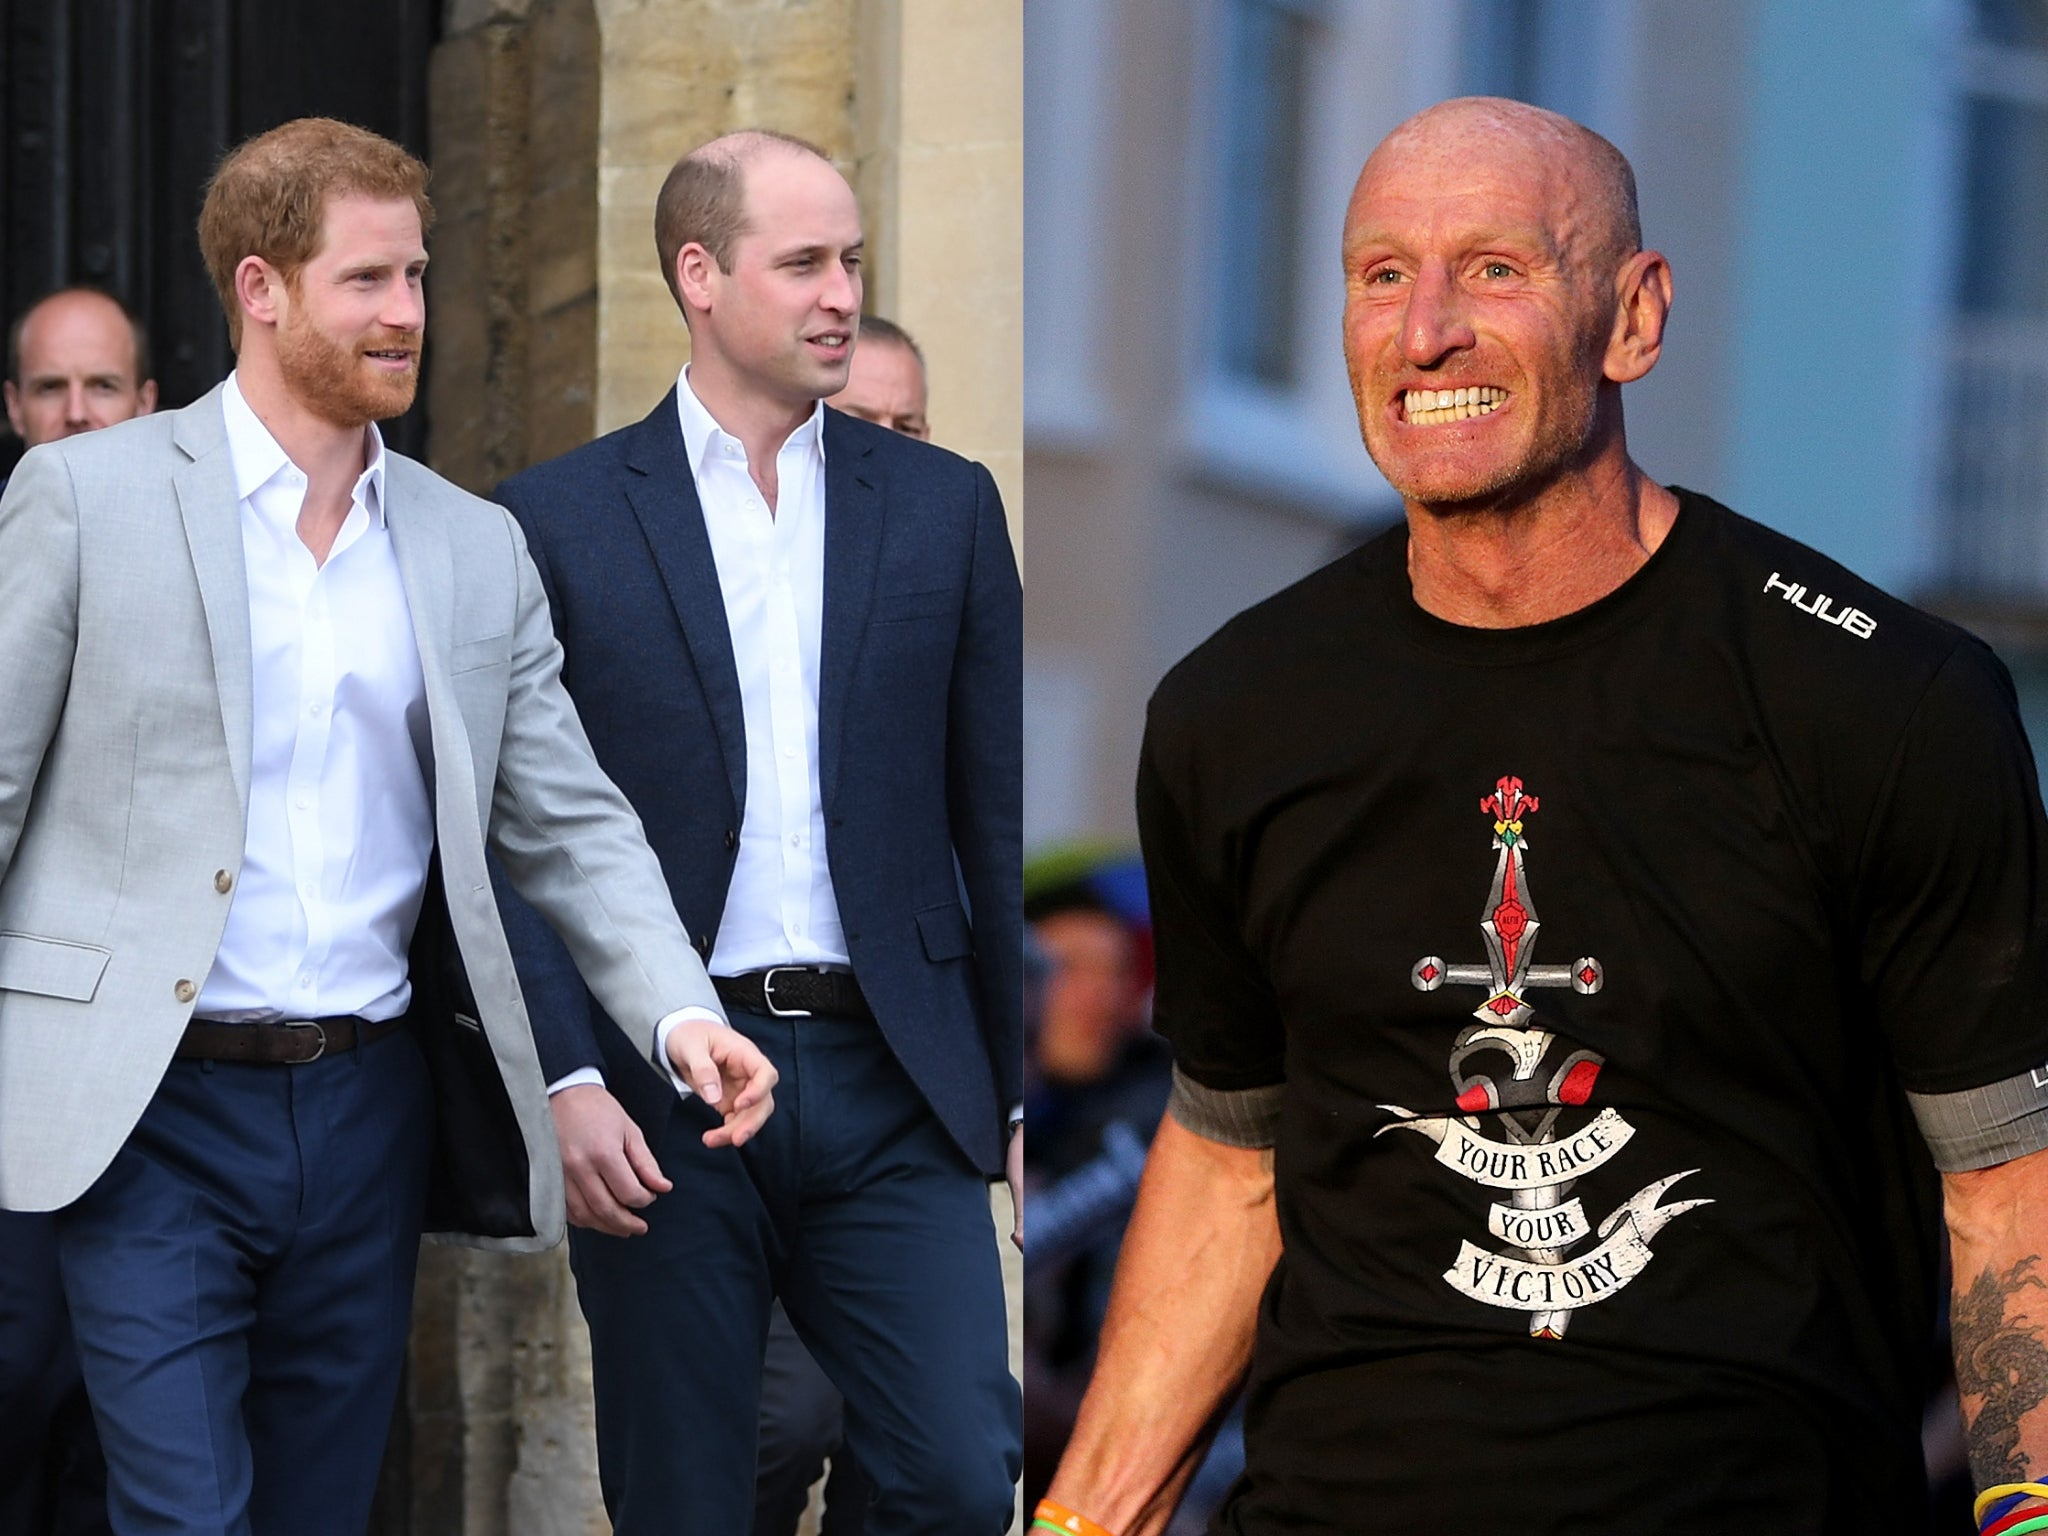 Prince Harry and William praise Gareth Thomas after he reveals HIV d…